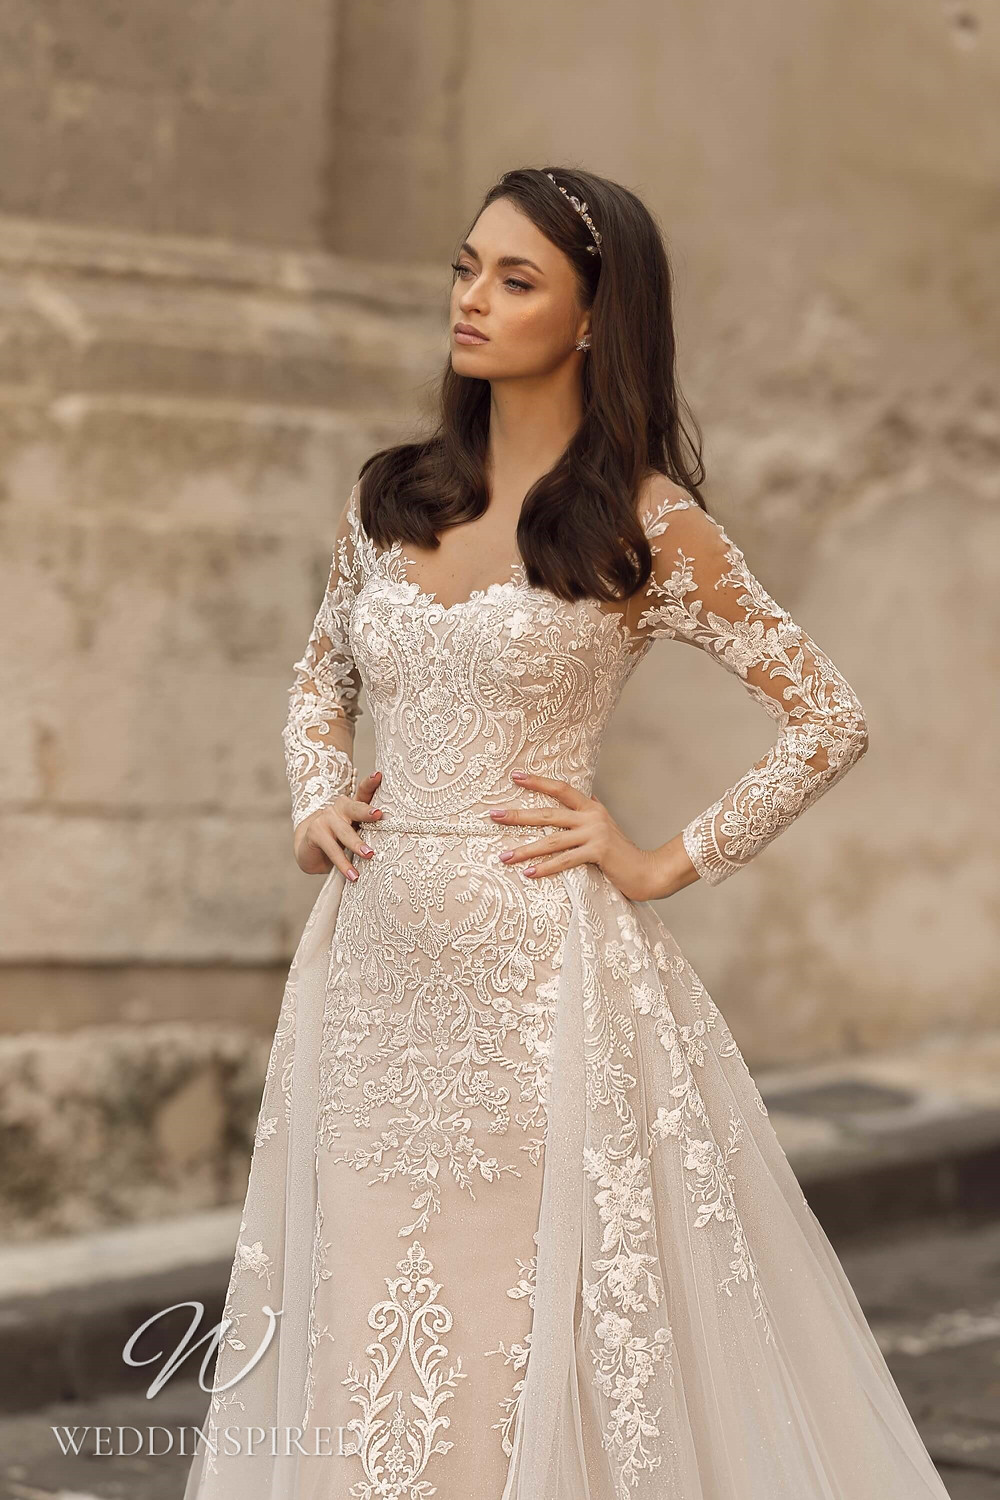 A Lussano 2021 blush lace and tulle mermaid wedding dress with a detachable skirt